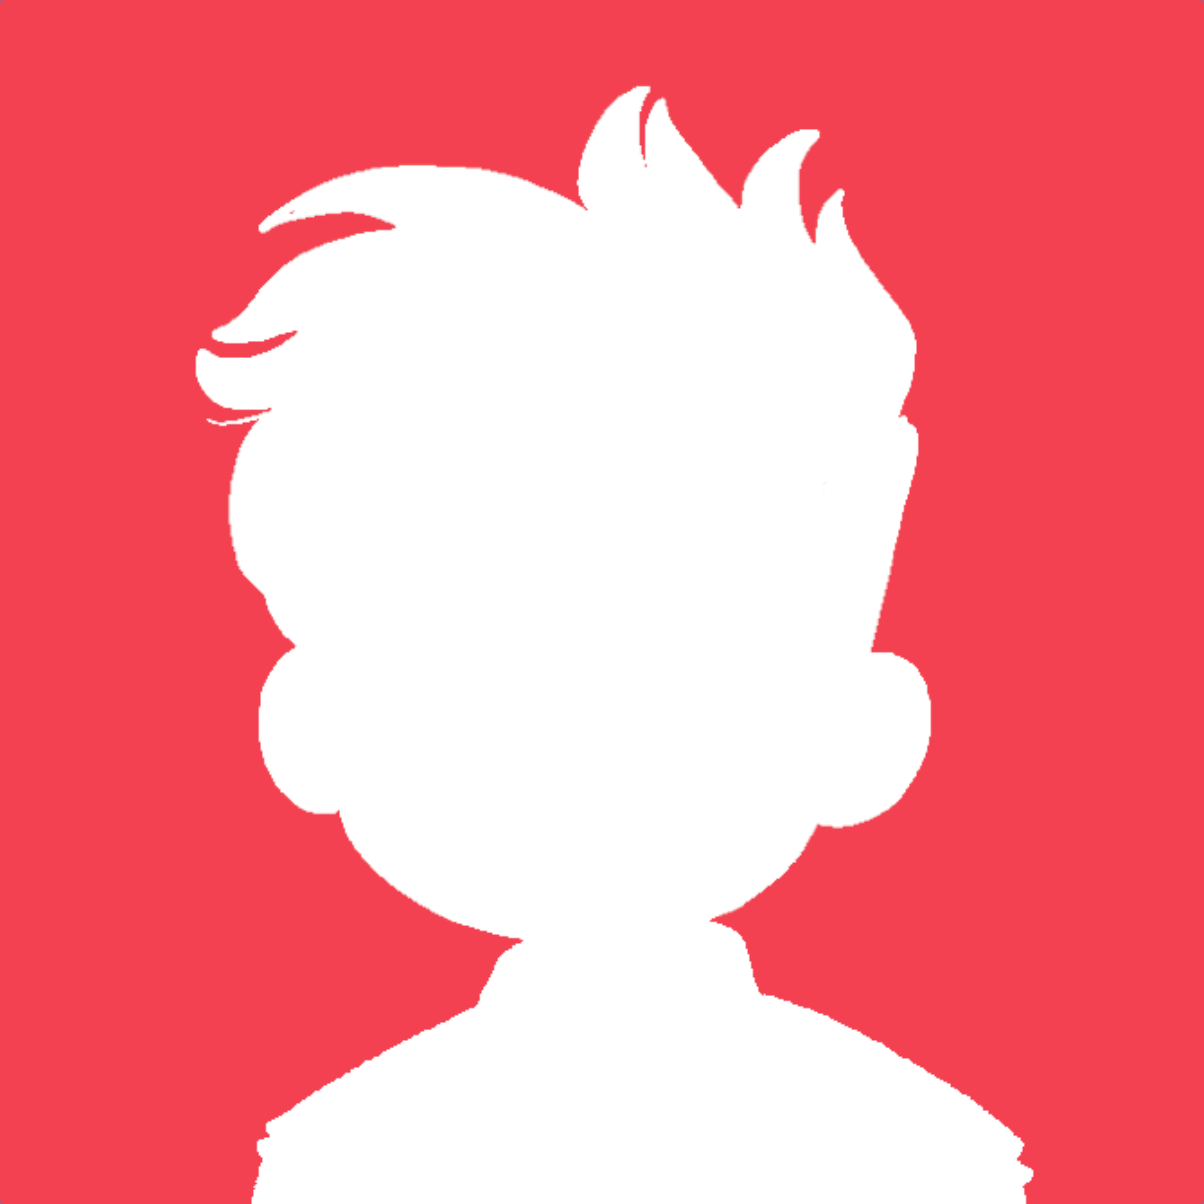 Profile picture for the comic artist, rytoonist